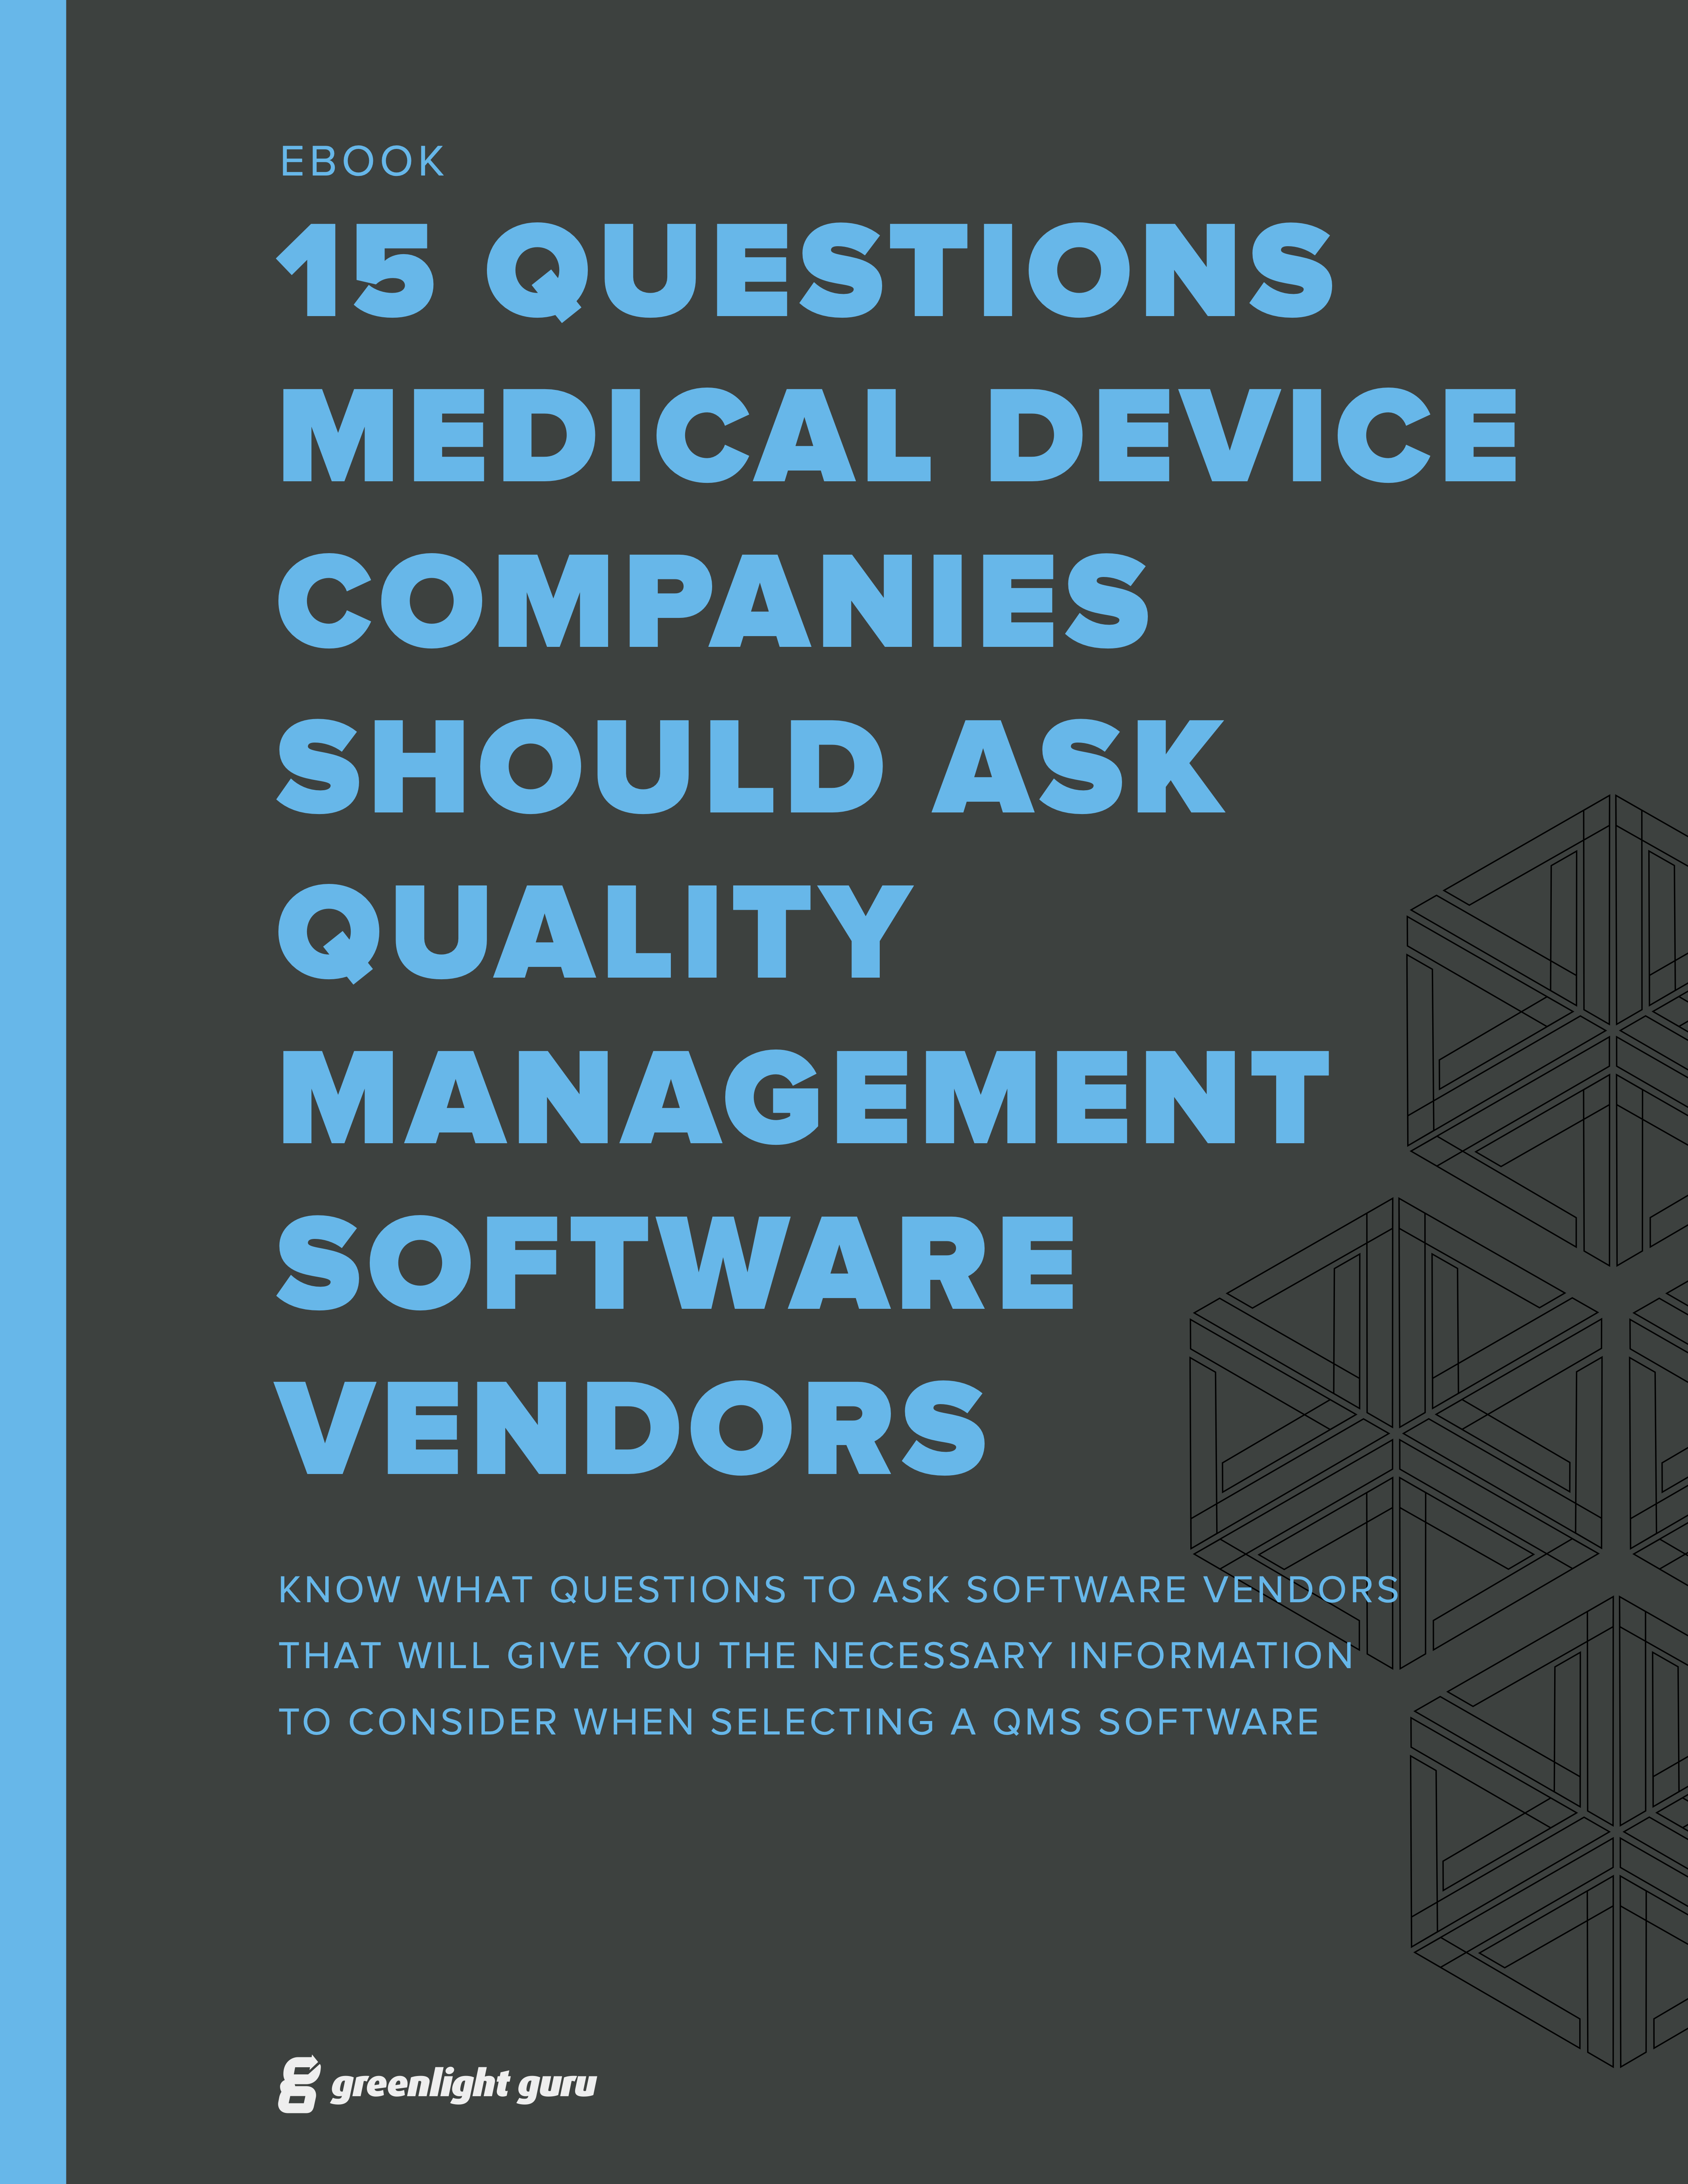 15 Questions Medical Device Companies Should Ask QMS Software Vendors